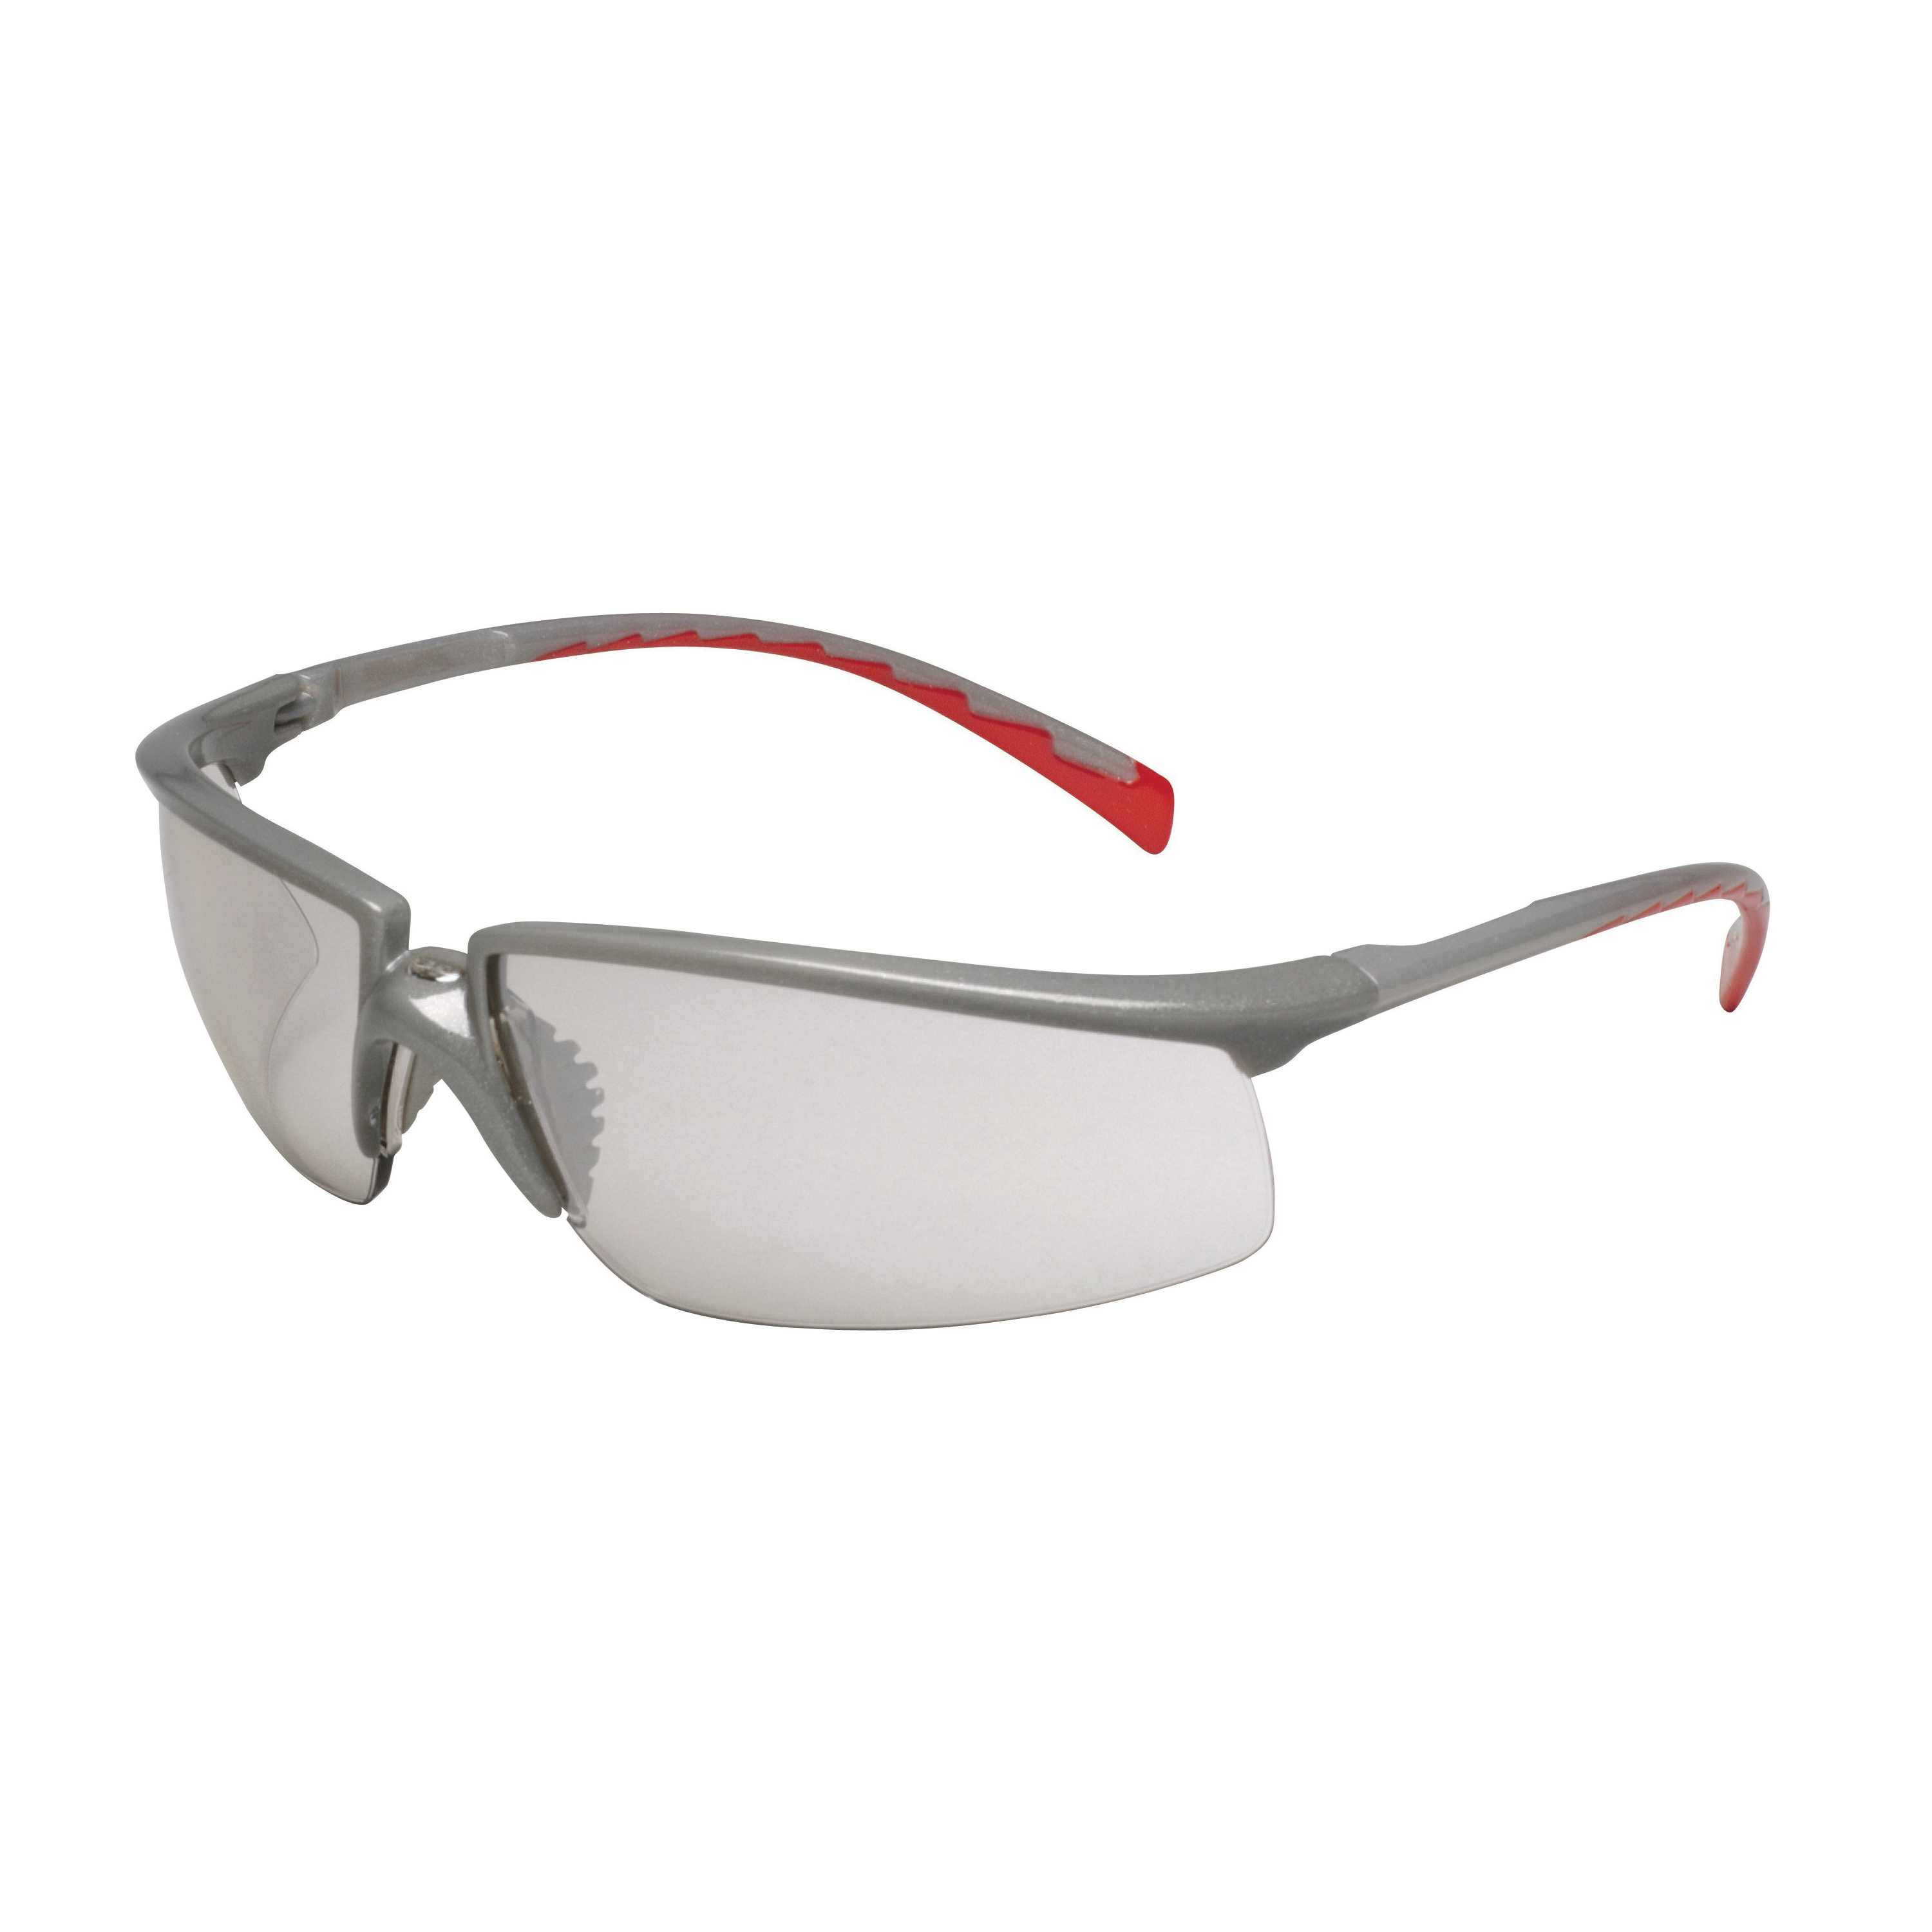 3M™ Privo™ 078371-62094 12268-00000-20 Value Range Protective Eyewear, Anti-Fog Indoor/Outdoor Mirror Lens, Half Framed Silver Plastic Frame, Polycarbonate Lens, Specifications Met: ANSI Z87.1-2003, CSA Z94.3-2007